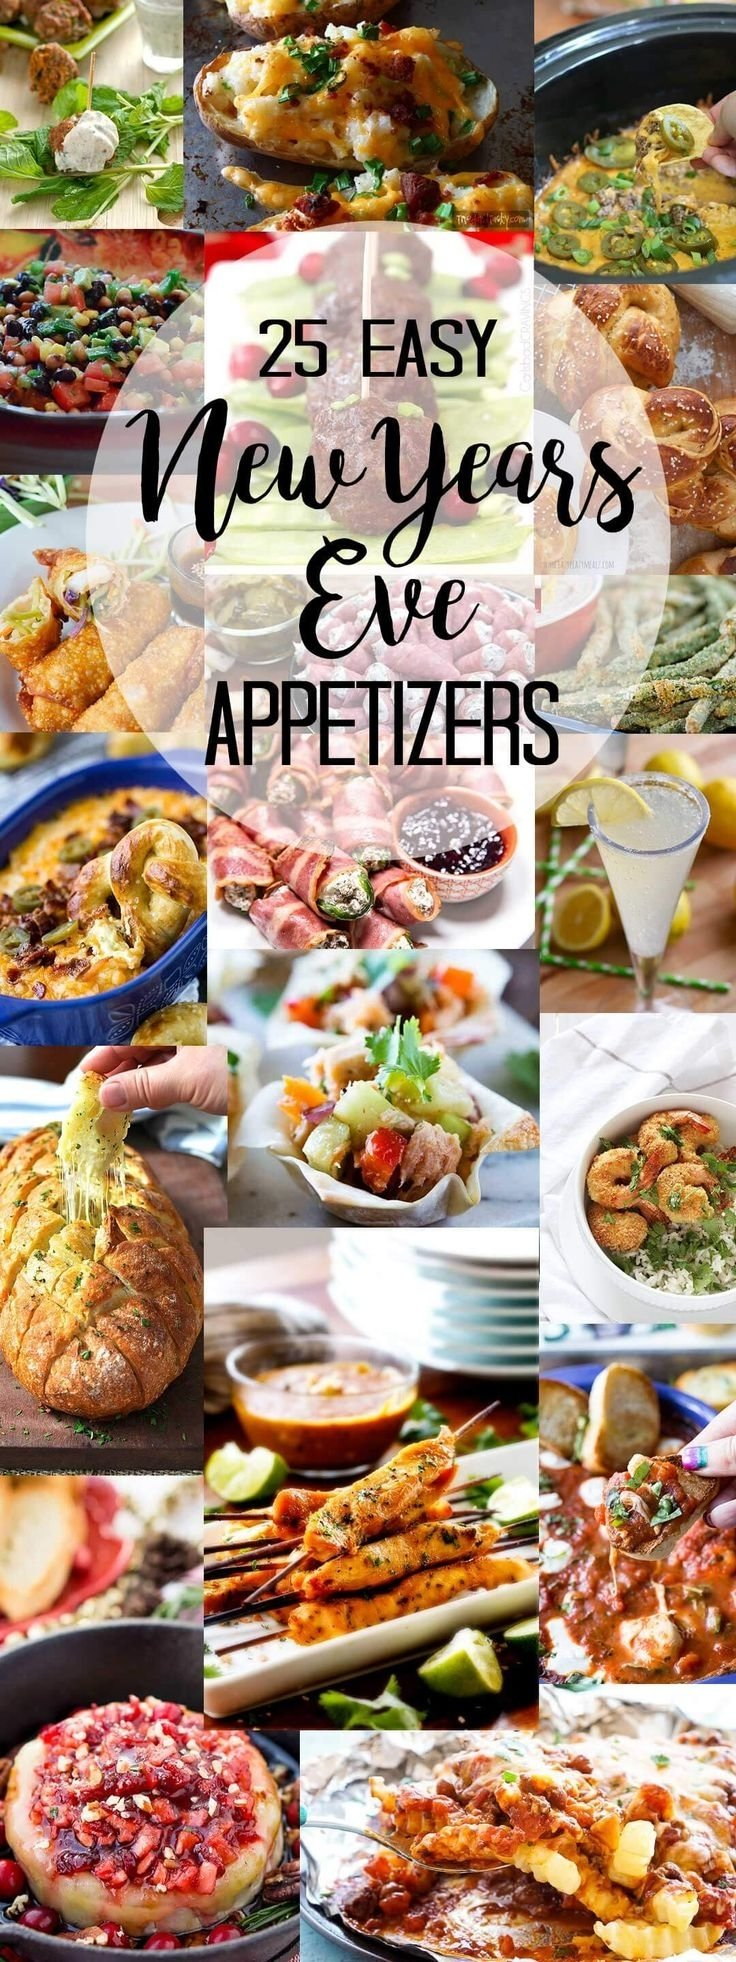 10 Unique New Years Eve Finger Food Ideas new year eve appetizer ideas mforum 2021